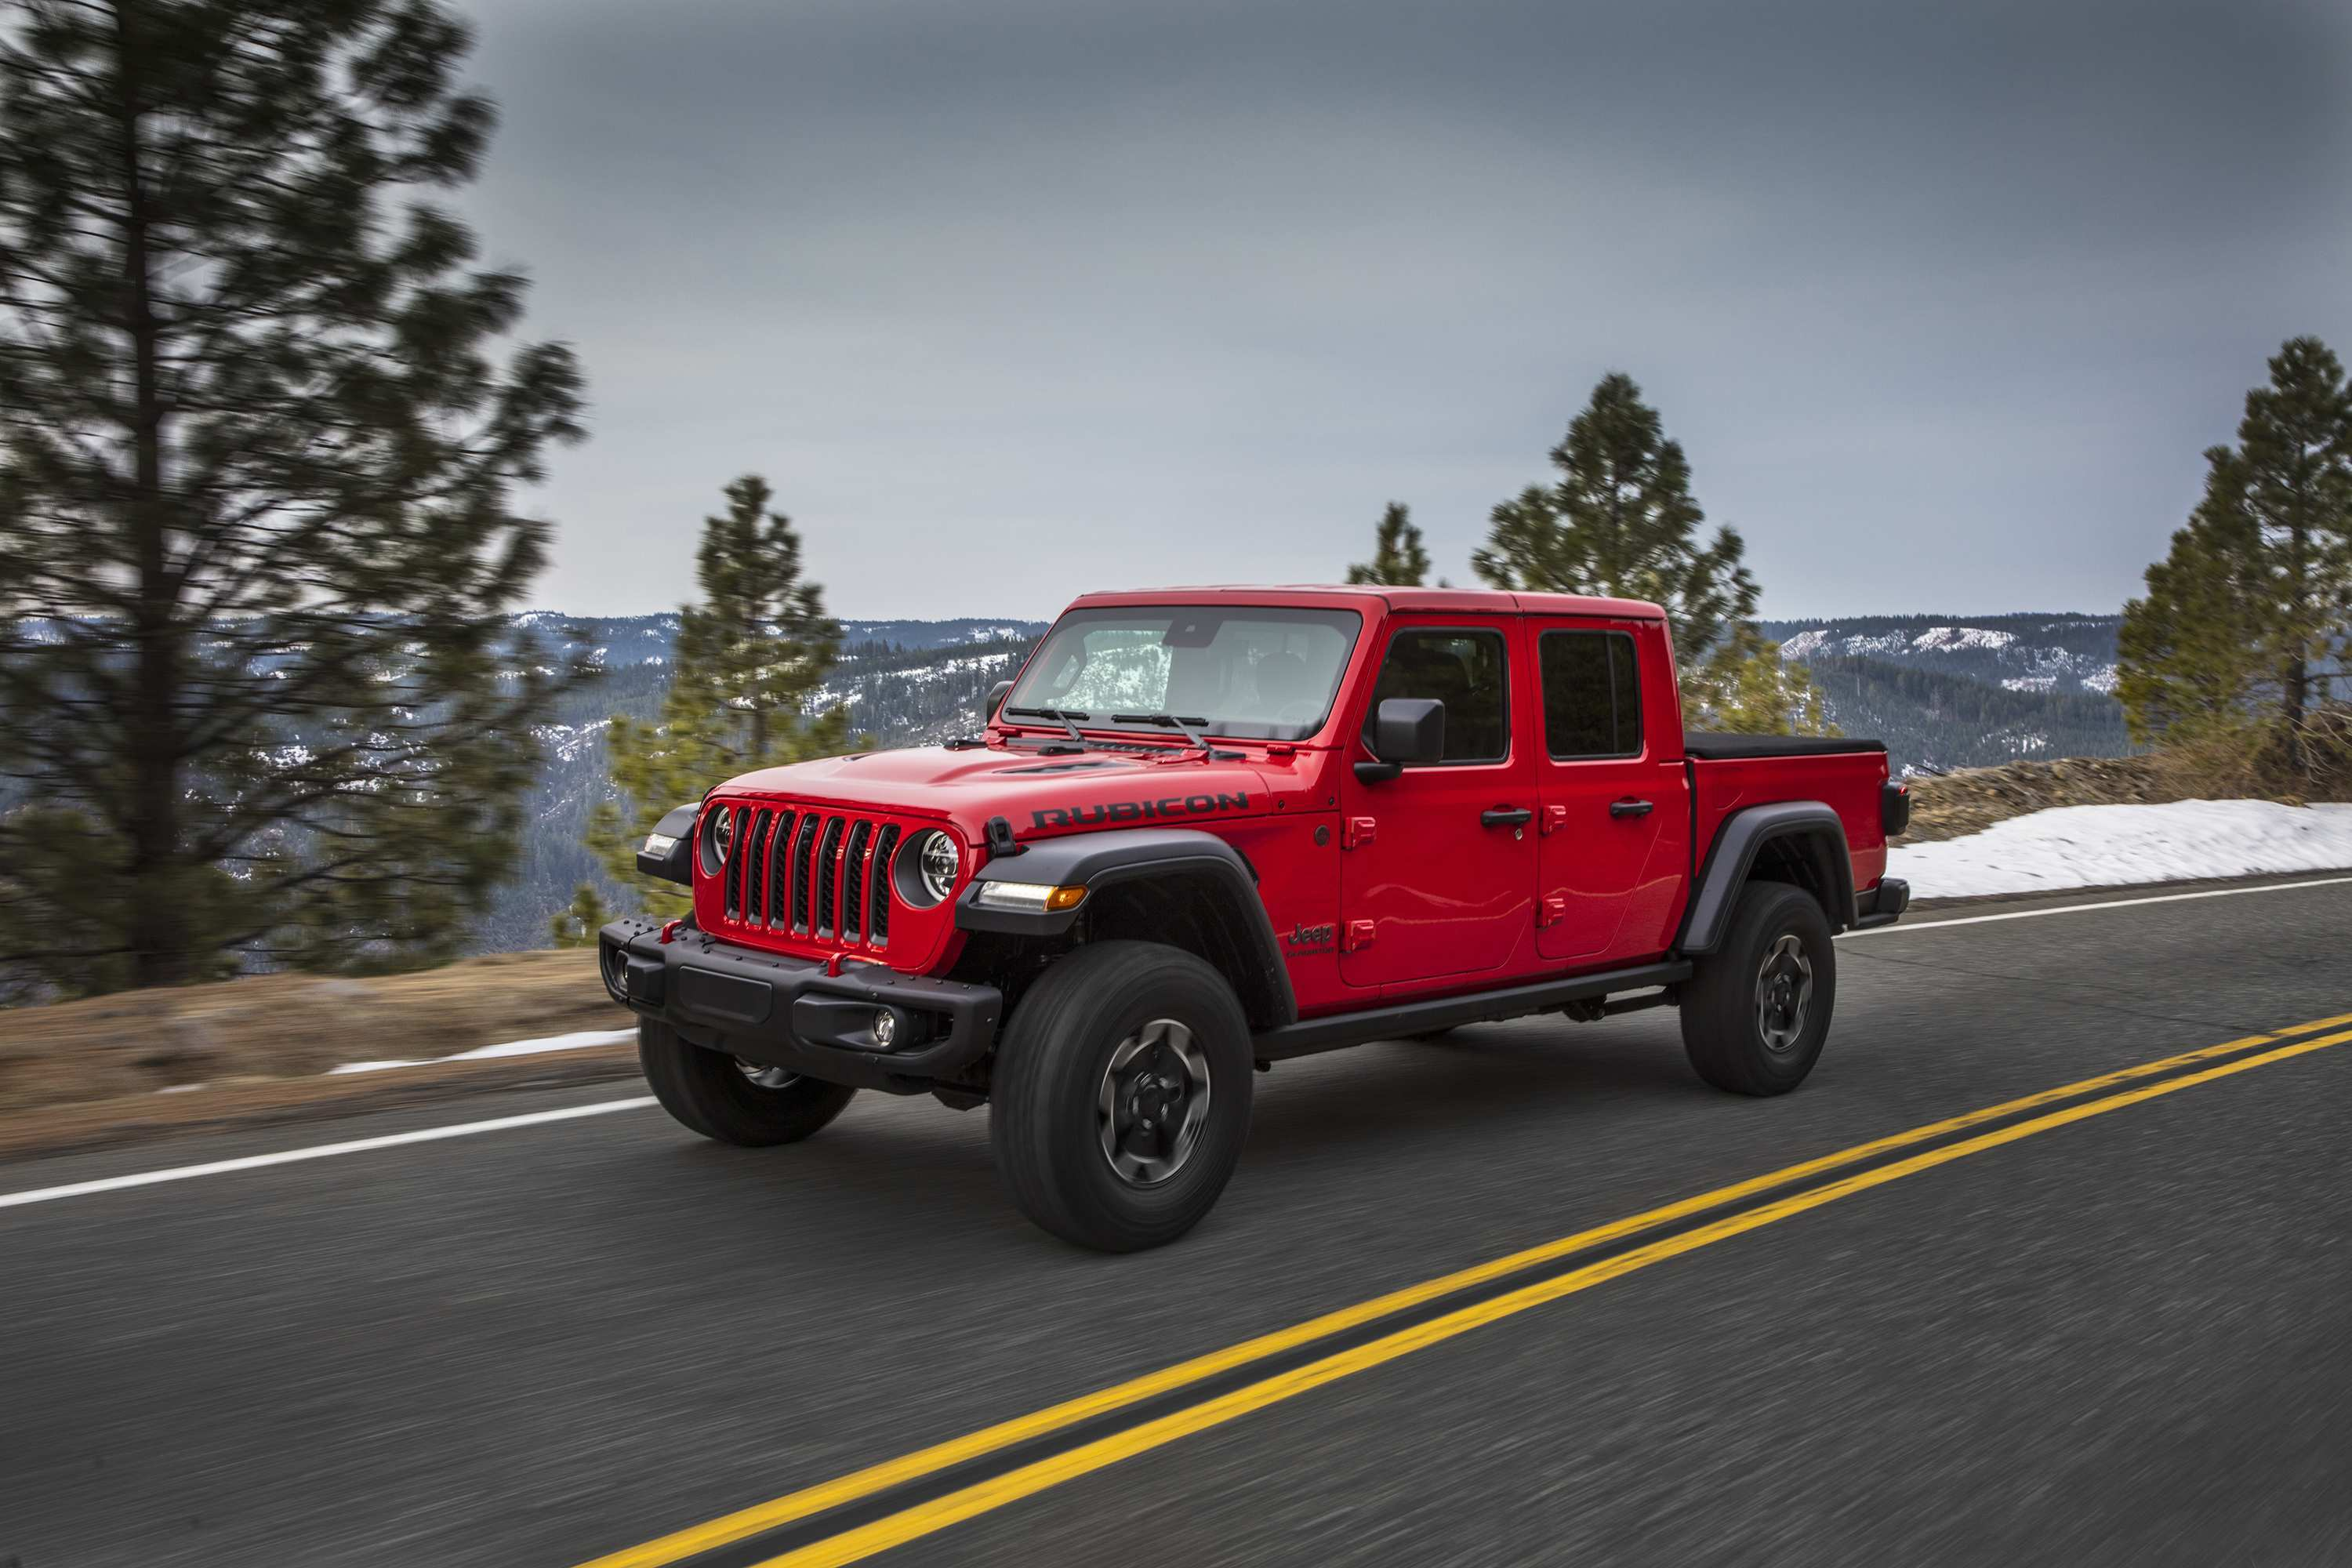 48 All New 2020 Jeep Kaiser Release Date with 2020 Jeep Kaiser